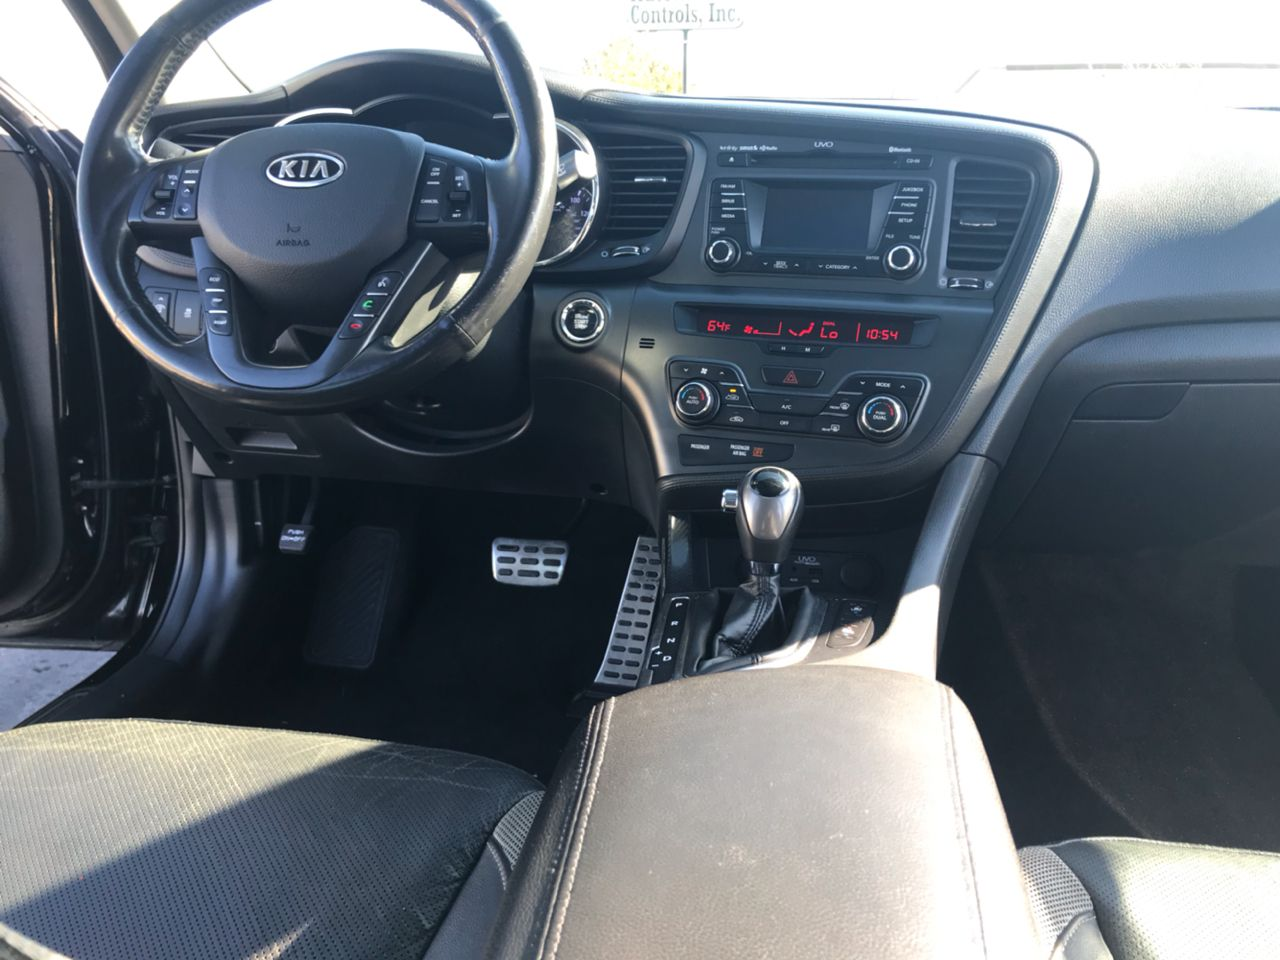 Beautiful 2012 Kia Optima Sx Turbo Sedan 100 Ready To Drive You Home Today Excellent Condition Both Inside And Out You Wo Kia Optima Kia Cars For Sale